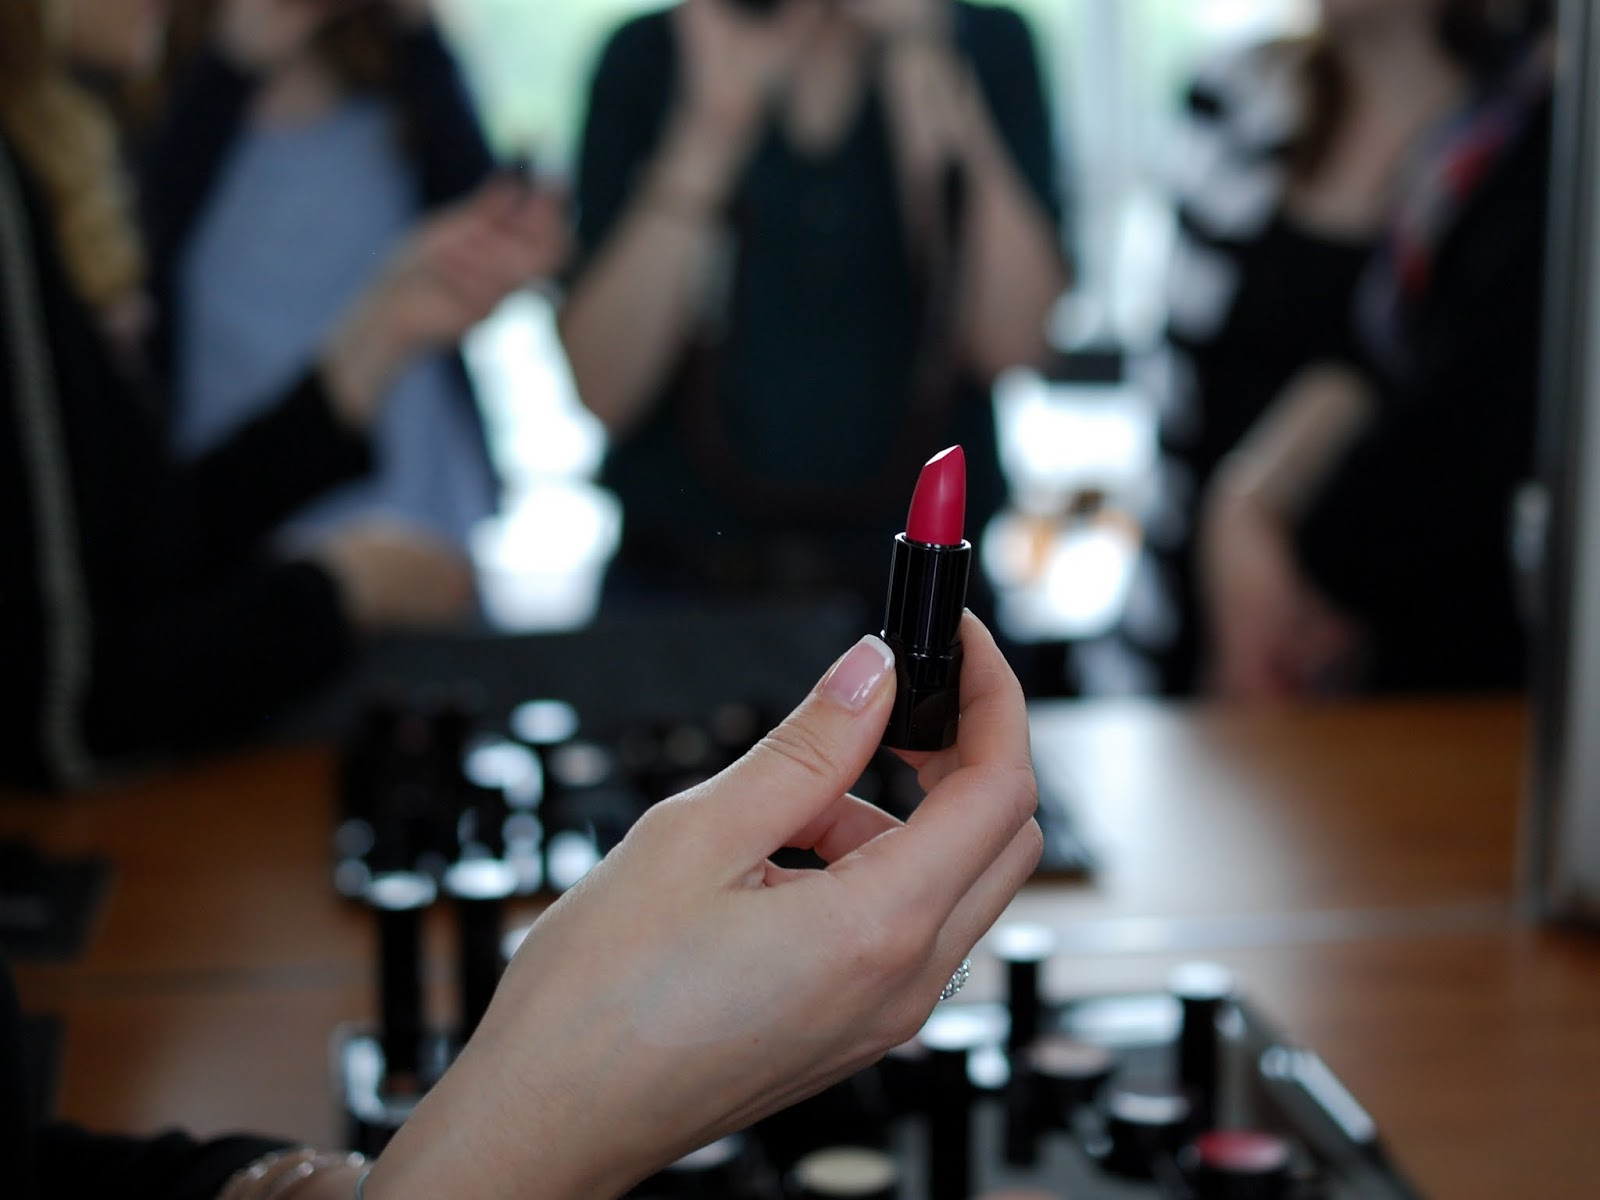 Serge Lutens Make Up Lippenstift